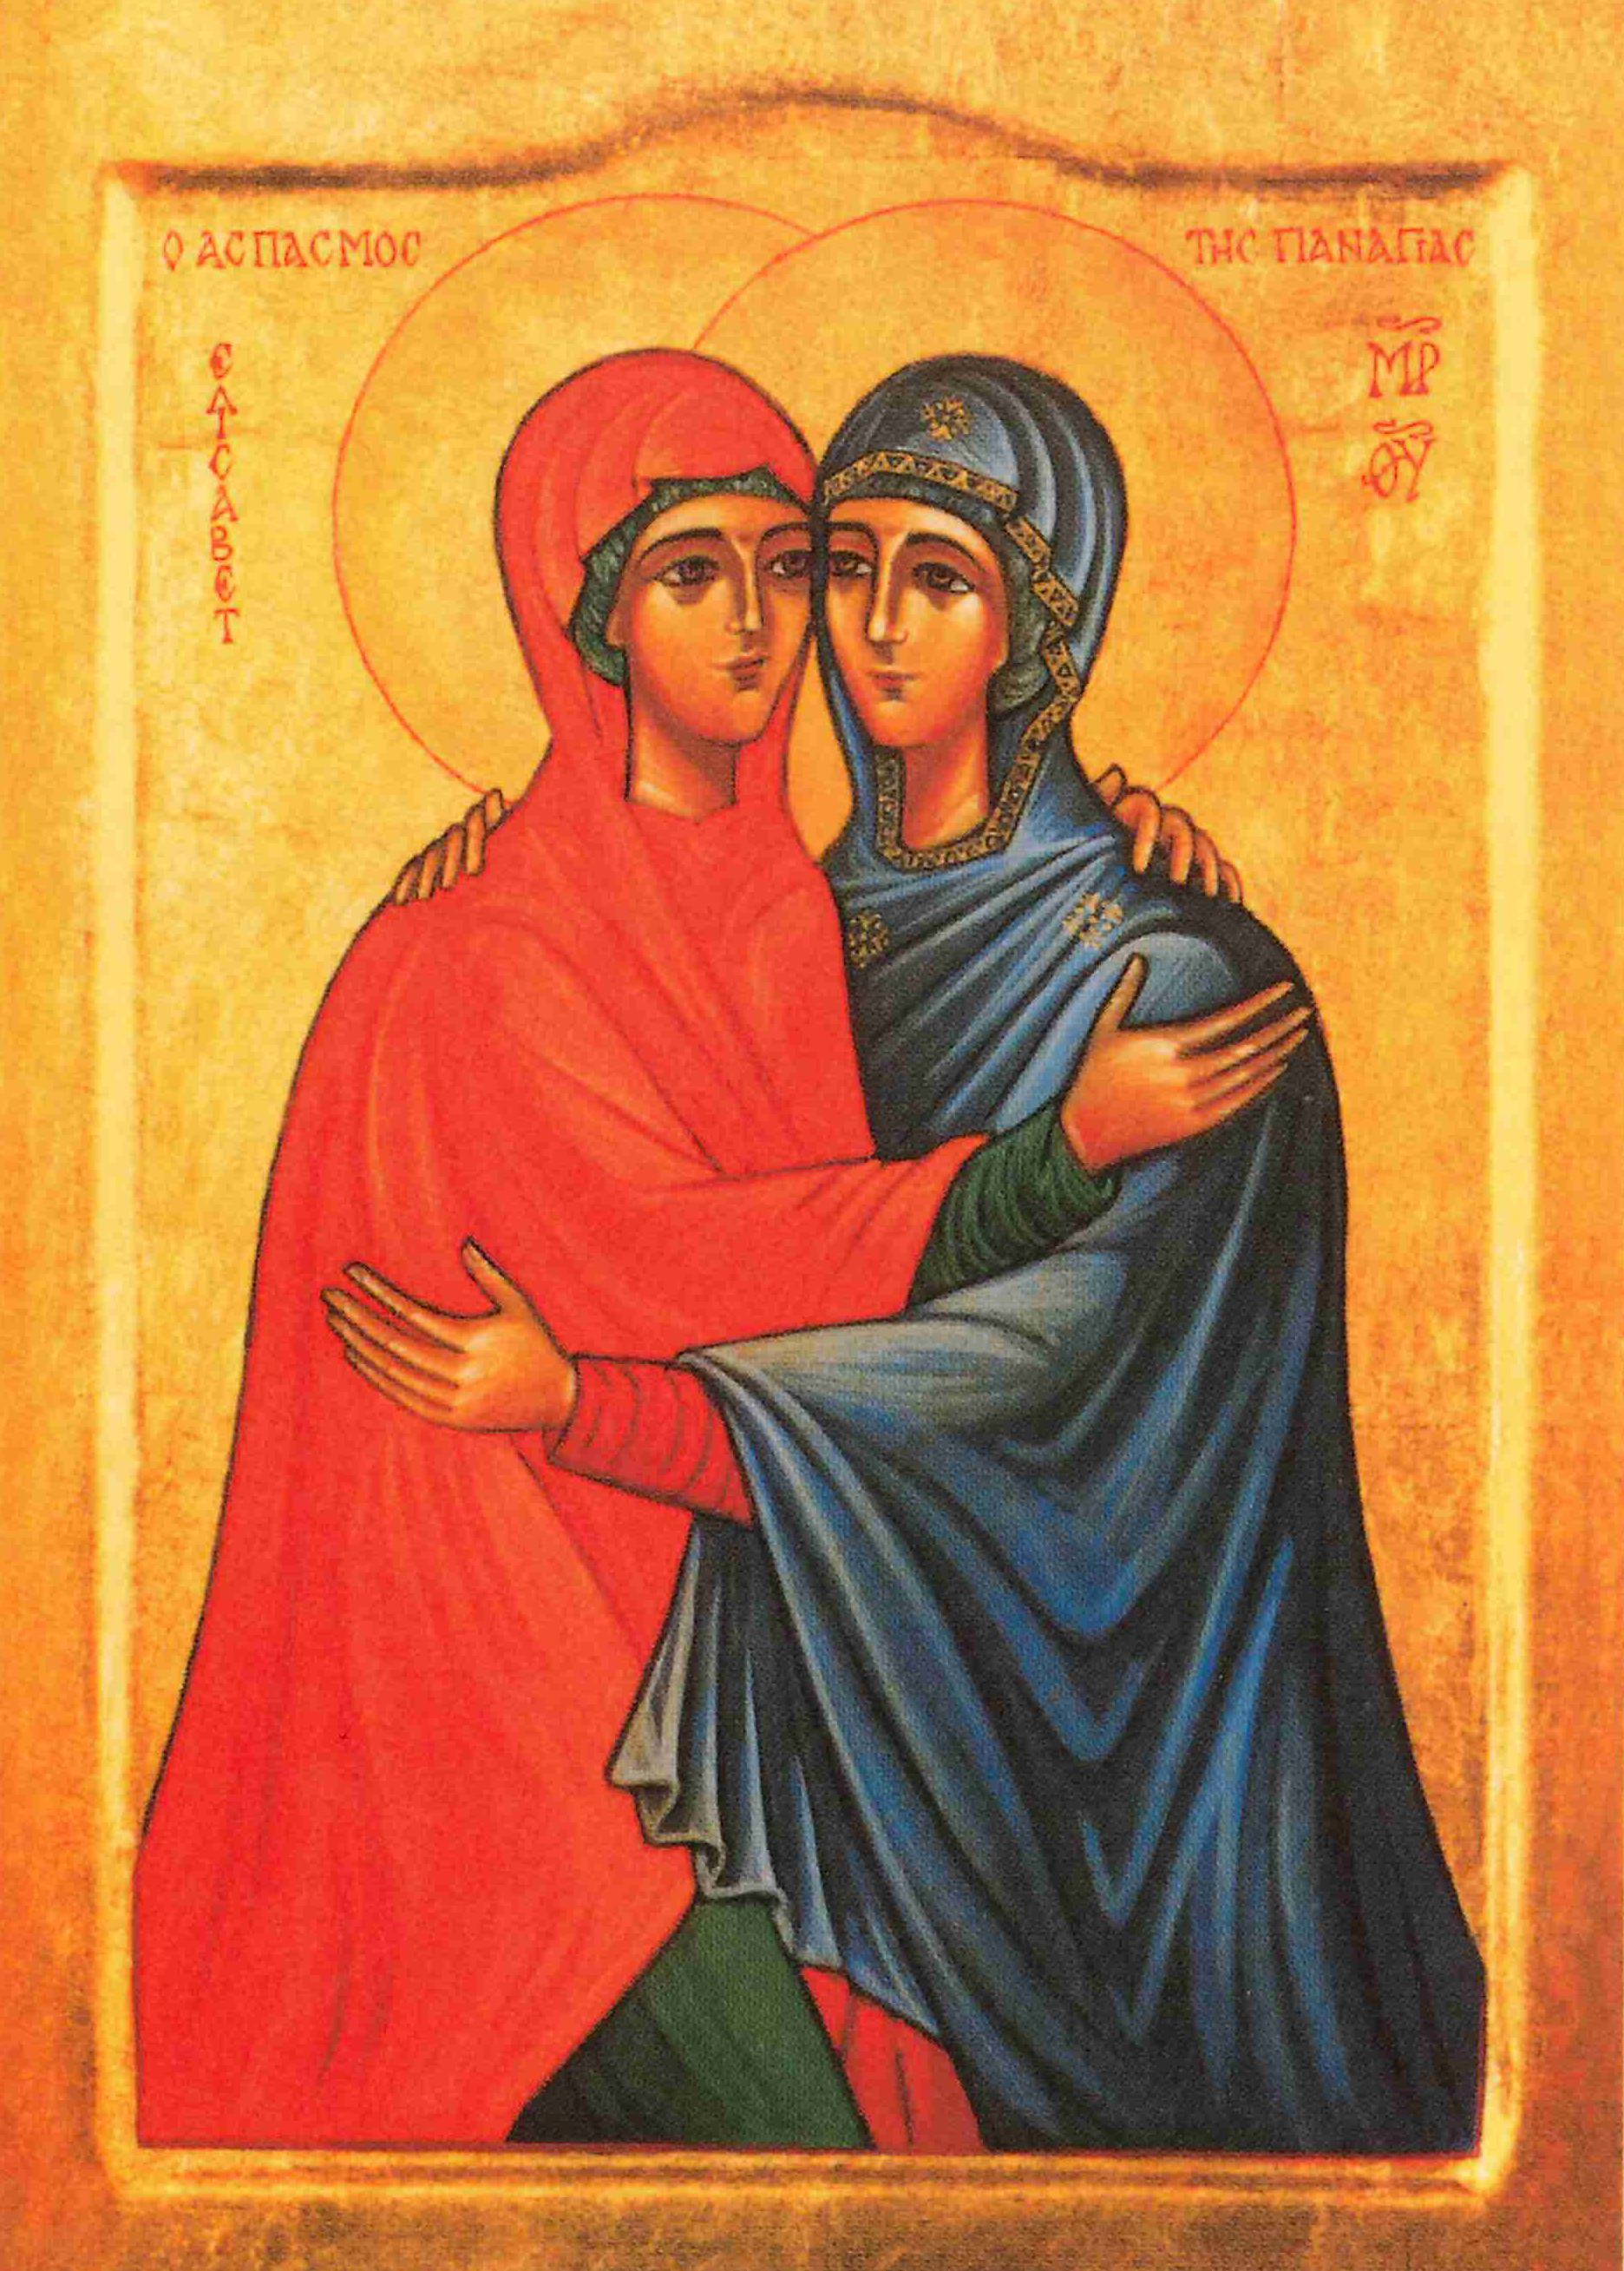 Icon of Mary and Elizabeth embracing